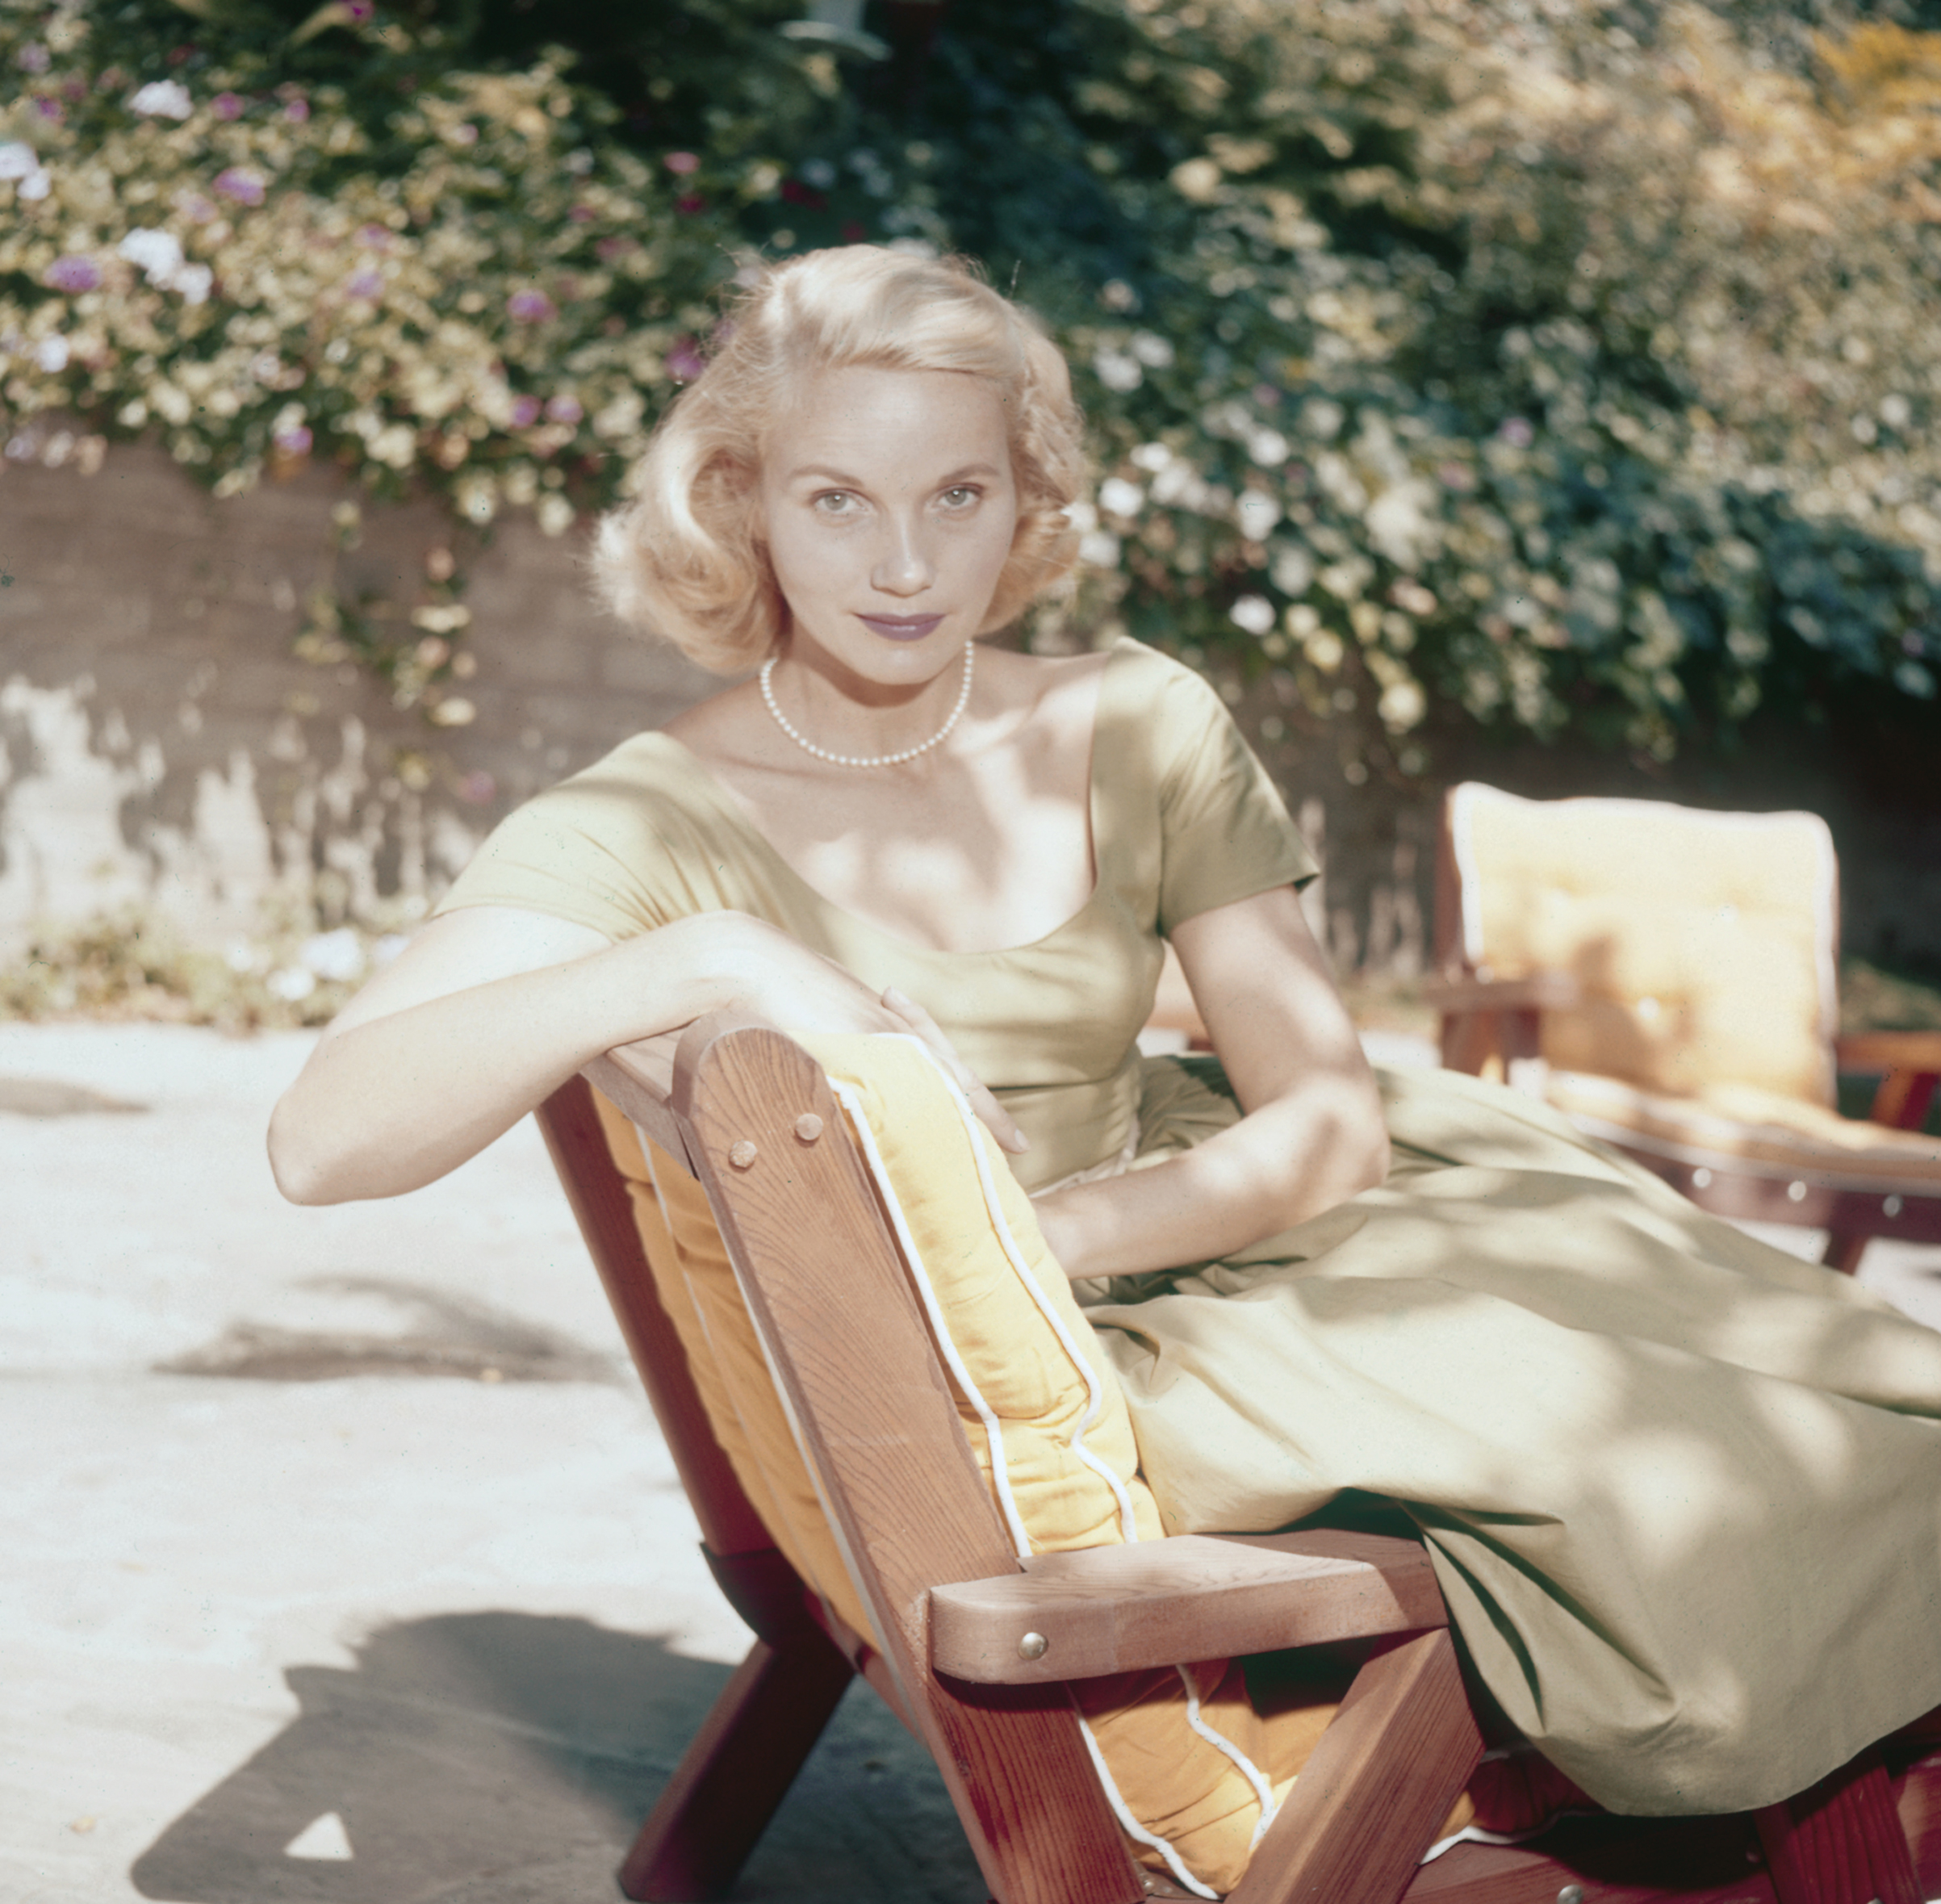 Actress Eva Marie Saint pictured seated on a sun lounger in a garden circa 1950.